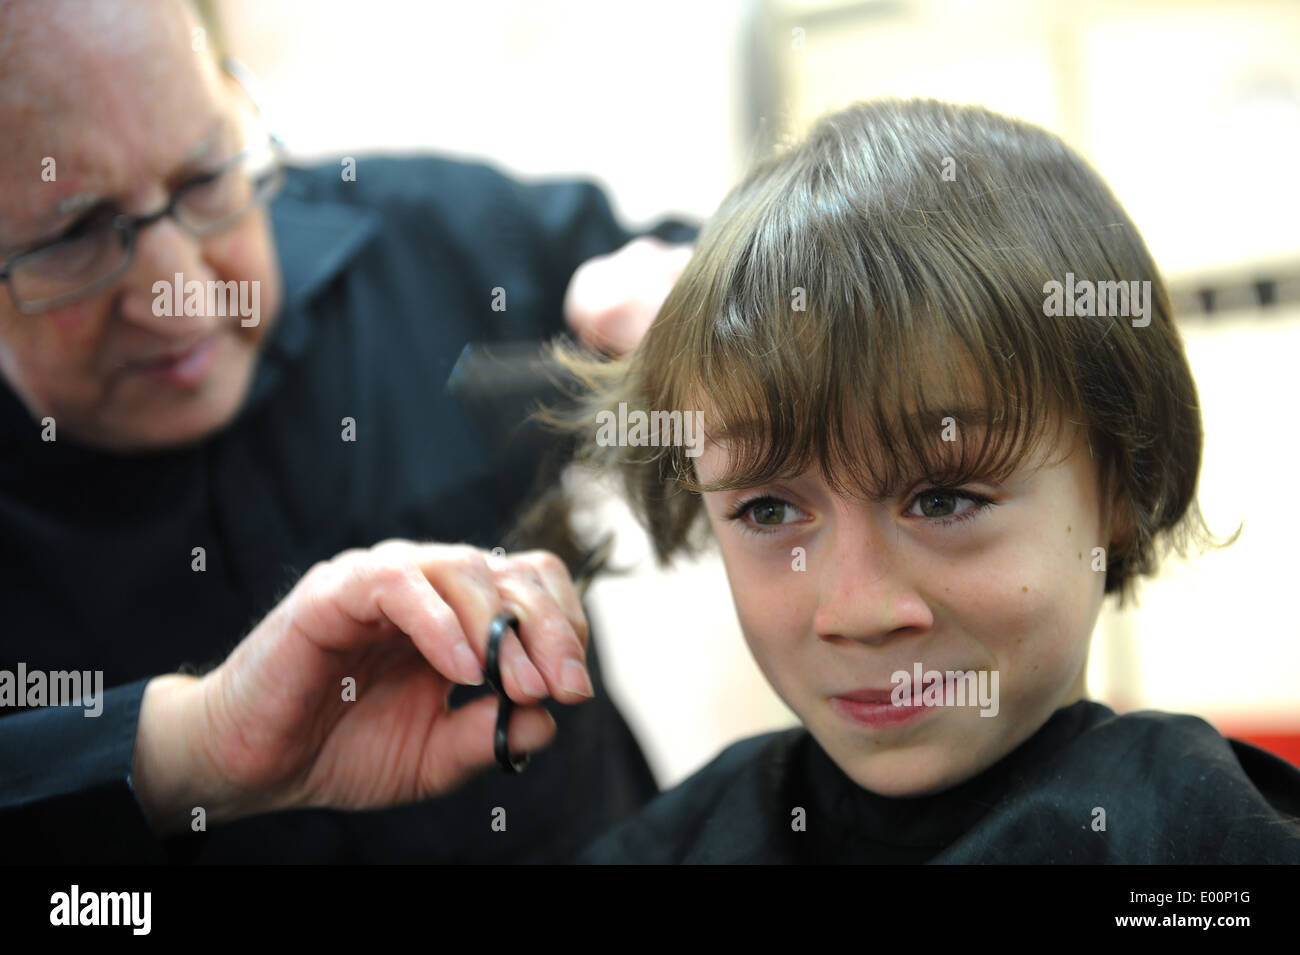 Haircut Barbers Boy Child Barber Yorkshire Cutting 9 Year Old Stock